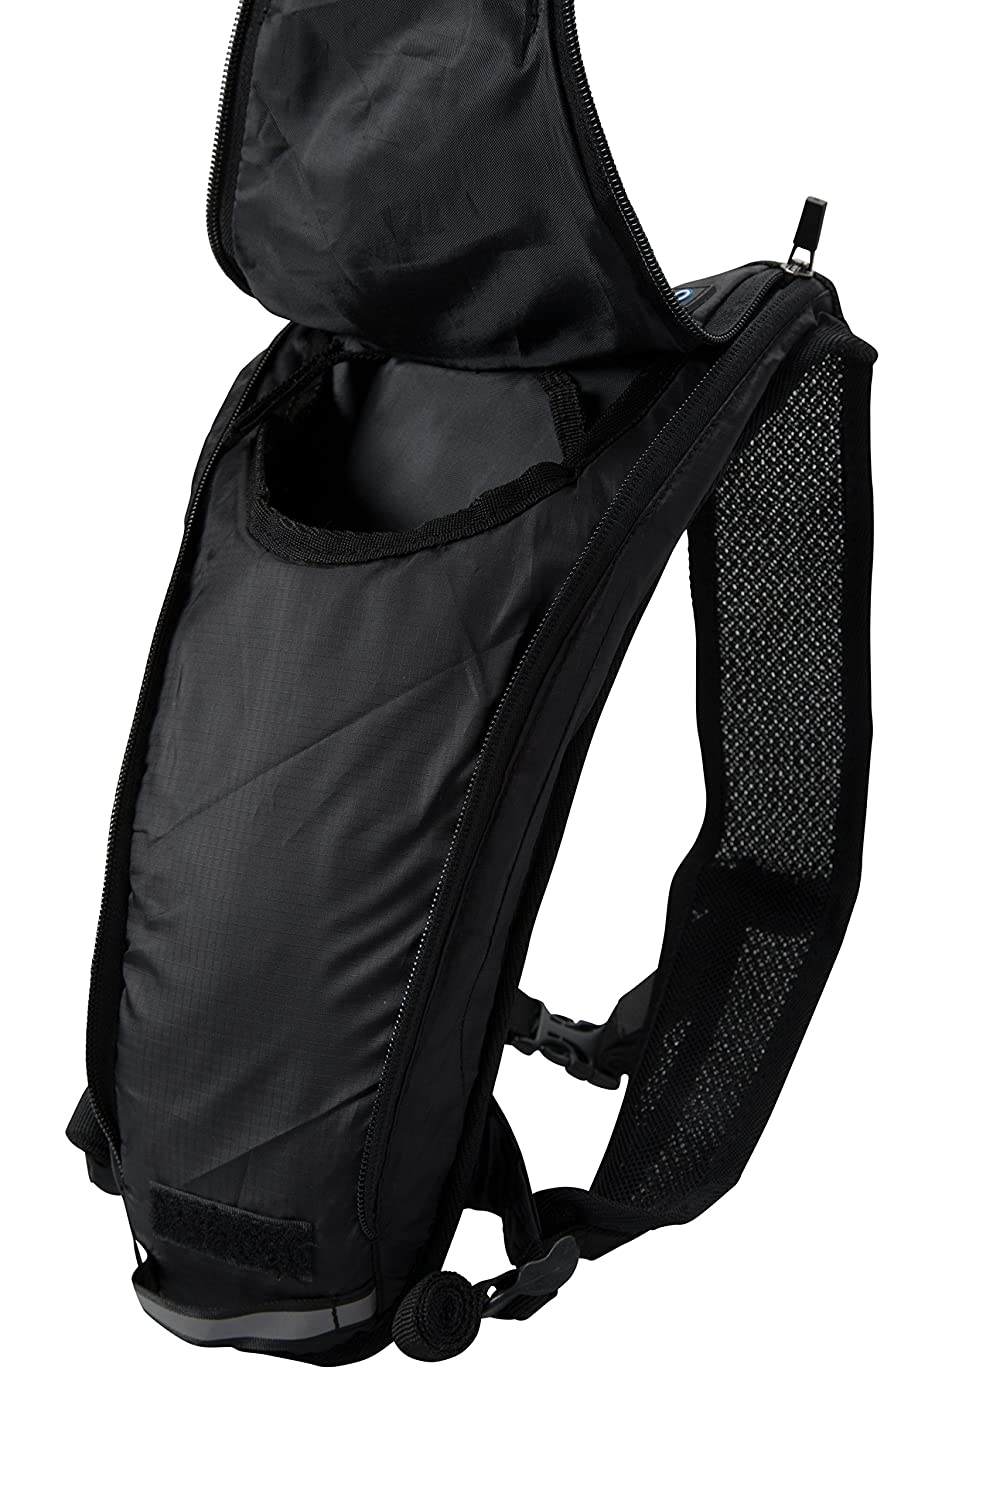 Amazon.com : Mountain Warehouse Track 2L Hydro Bag - Breathable Hydration Pack Black : Sports & Outdoors